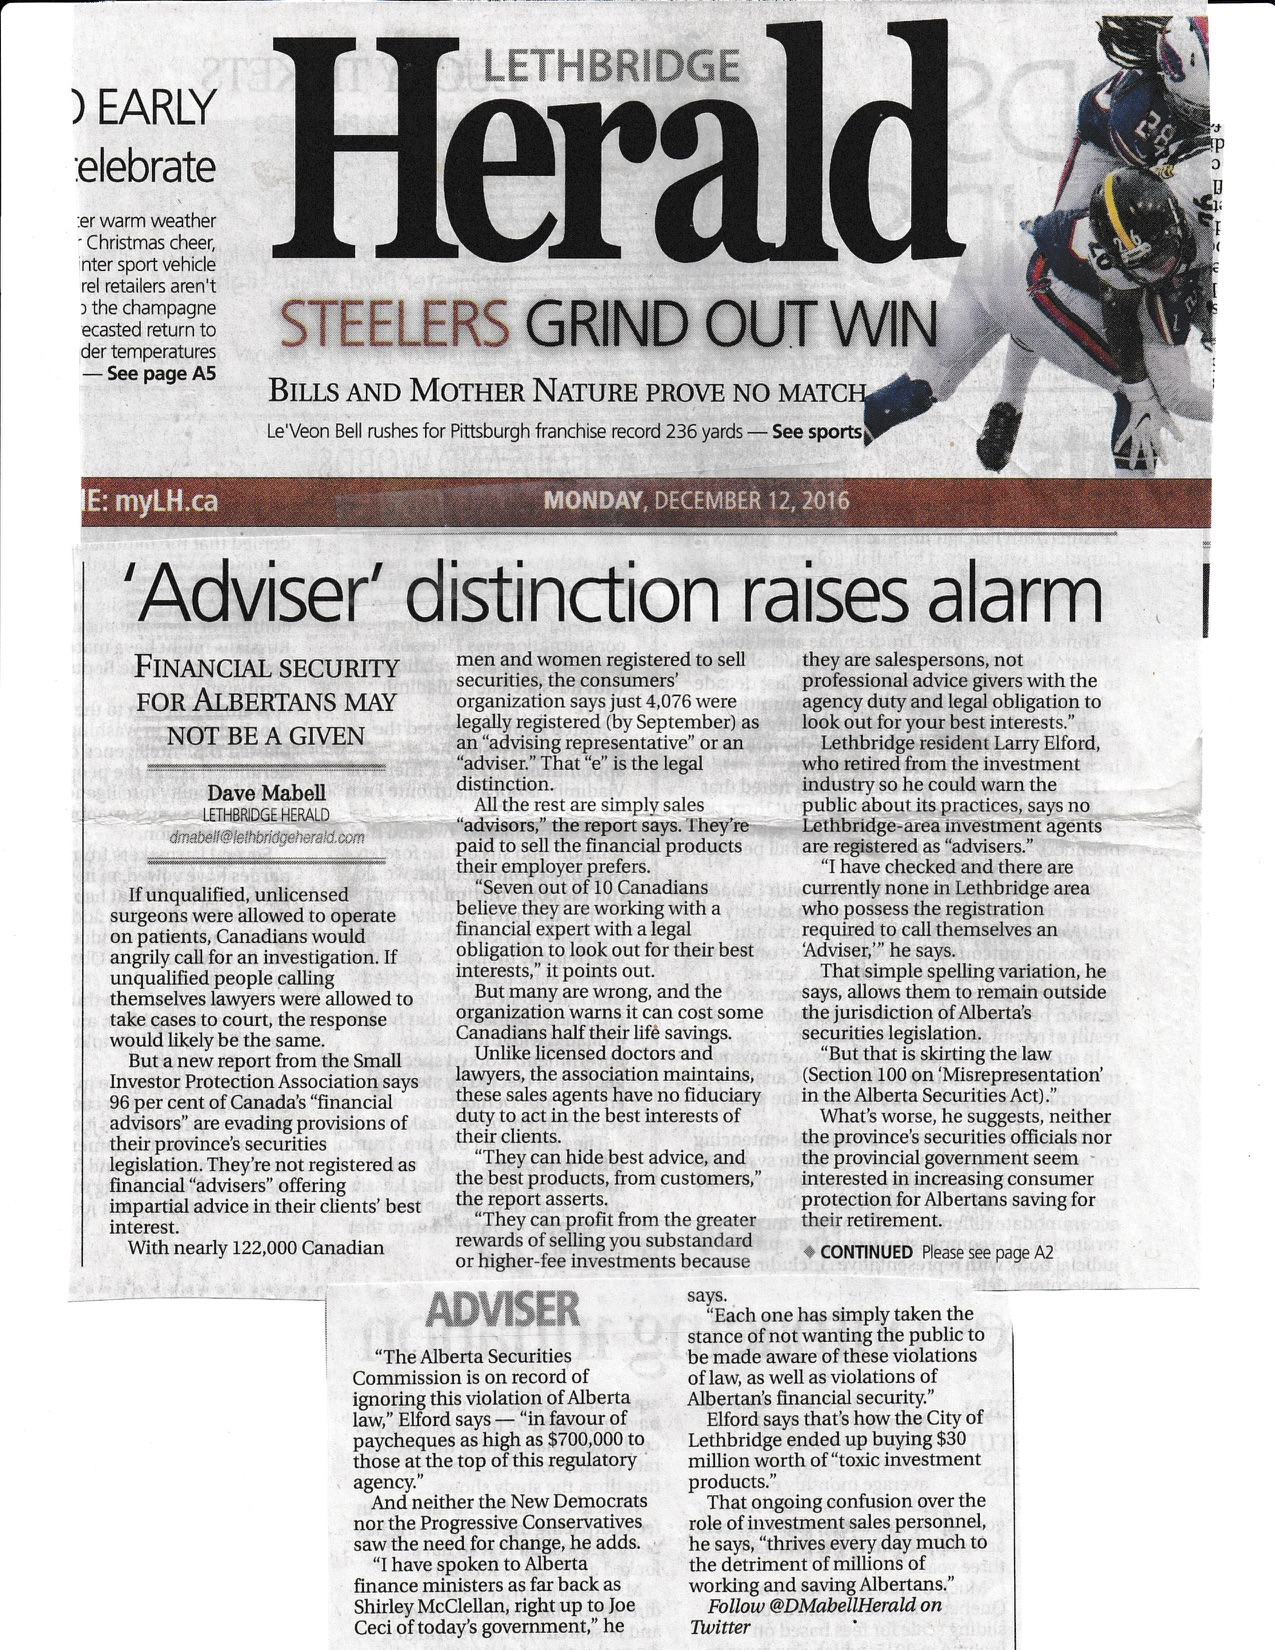 jpg Lethbridge Herald ADVISOR DISTINCTION Dec 12 2016.jpg